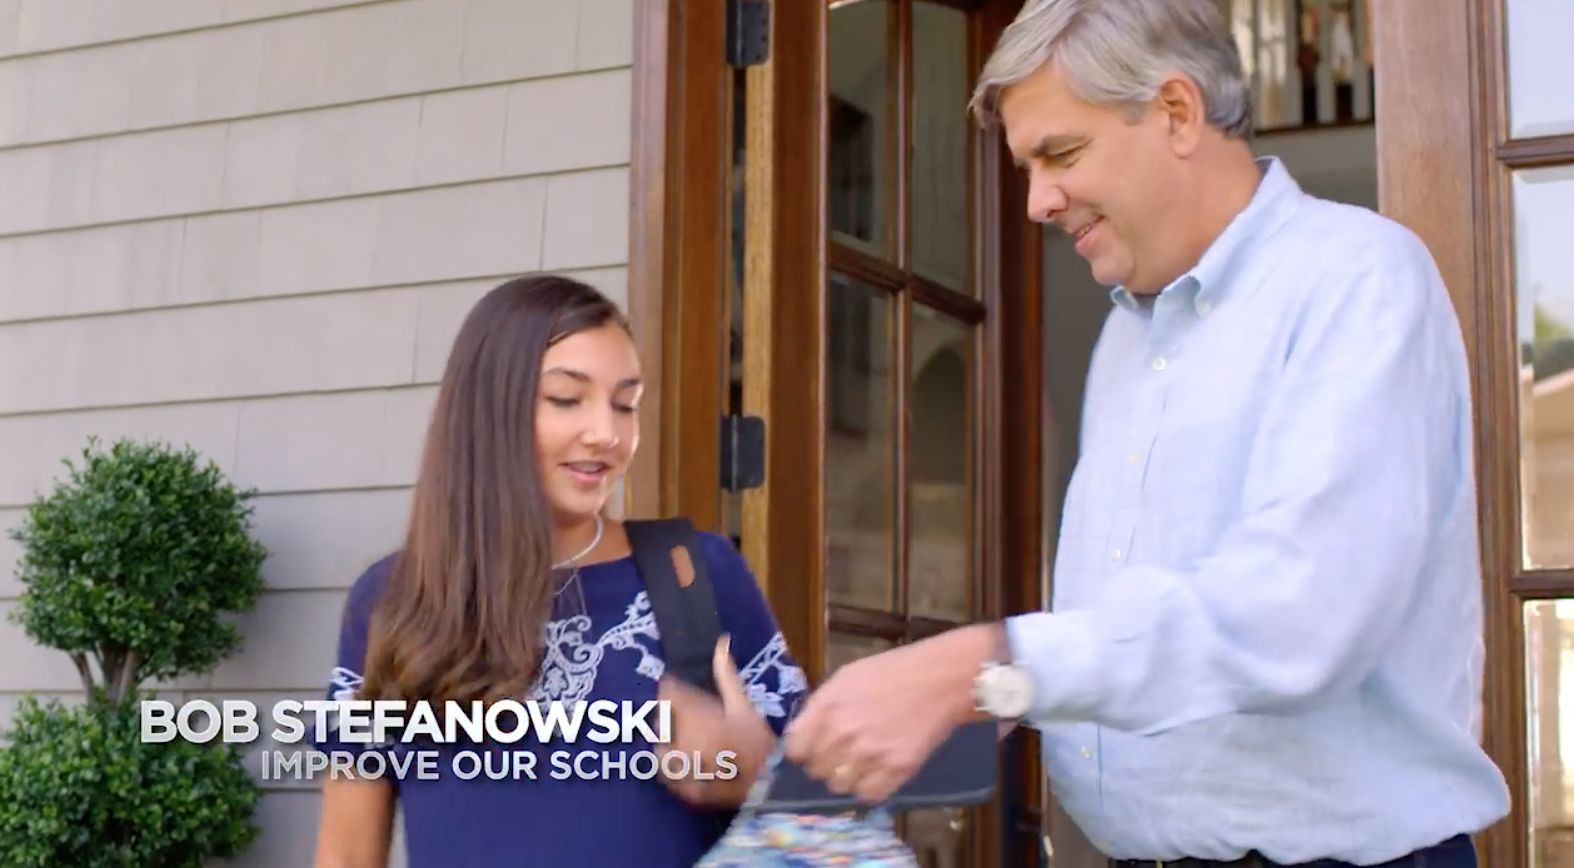 Five things to know about Stefanowski's plans for public schools, if elected governor